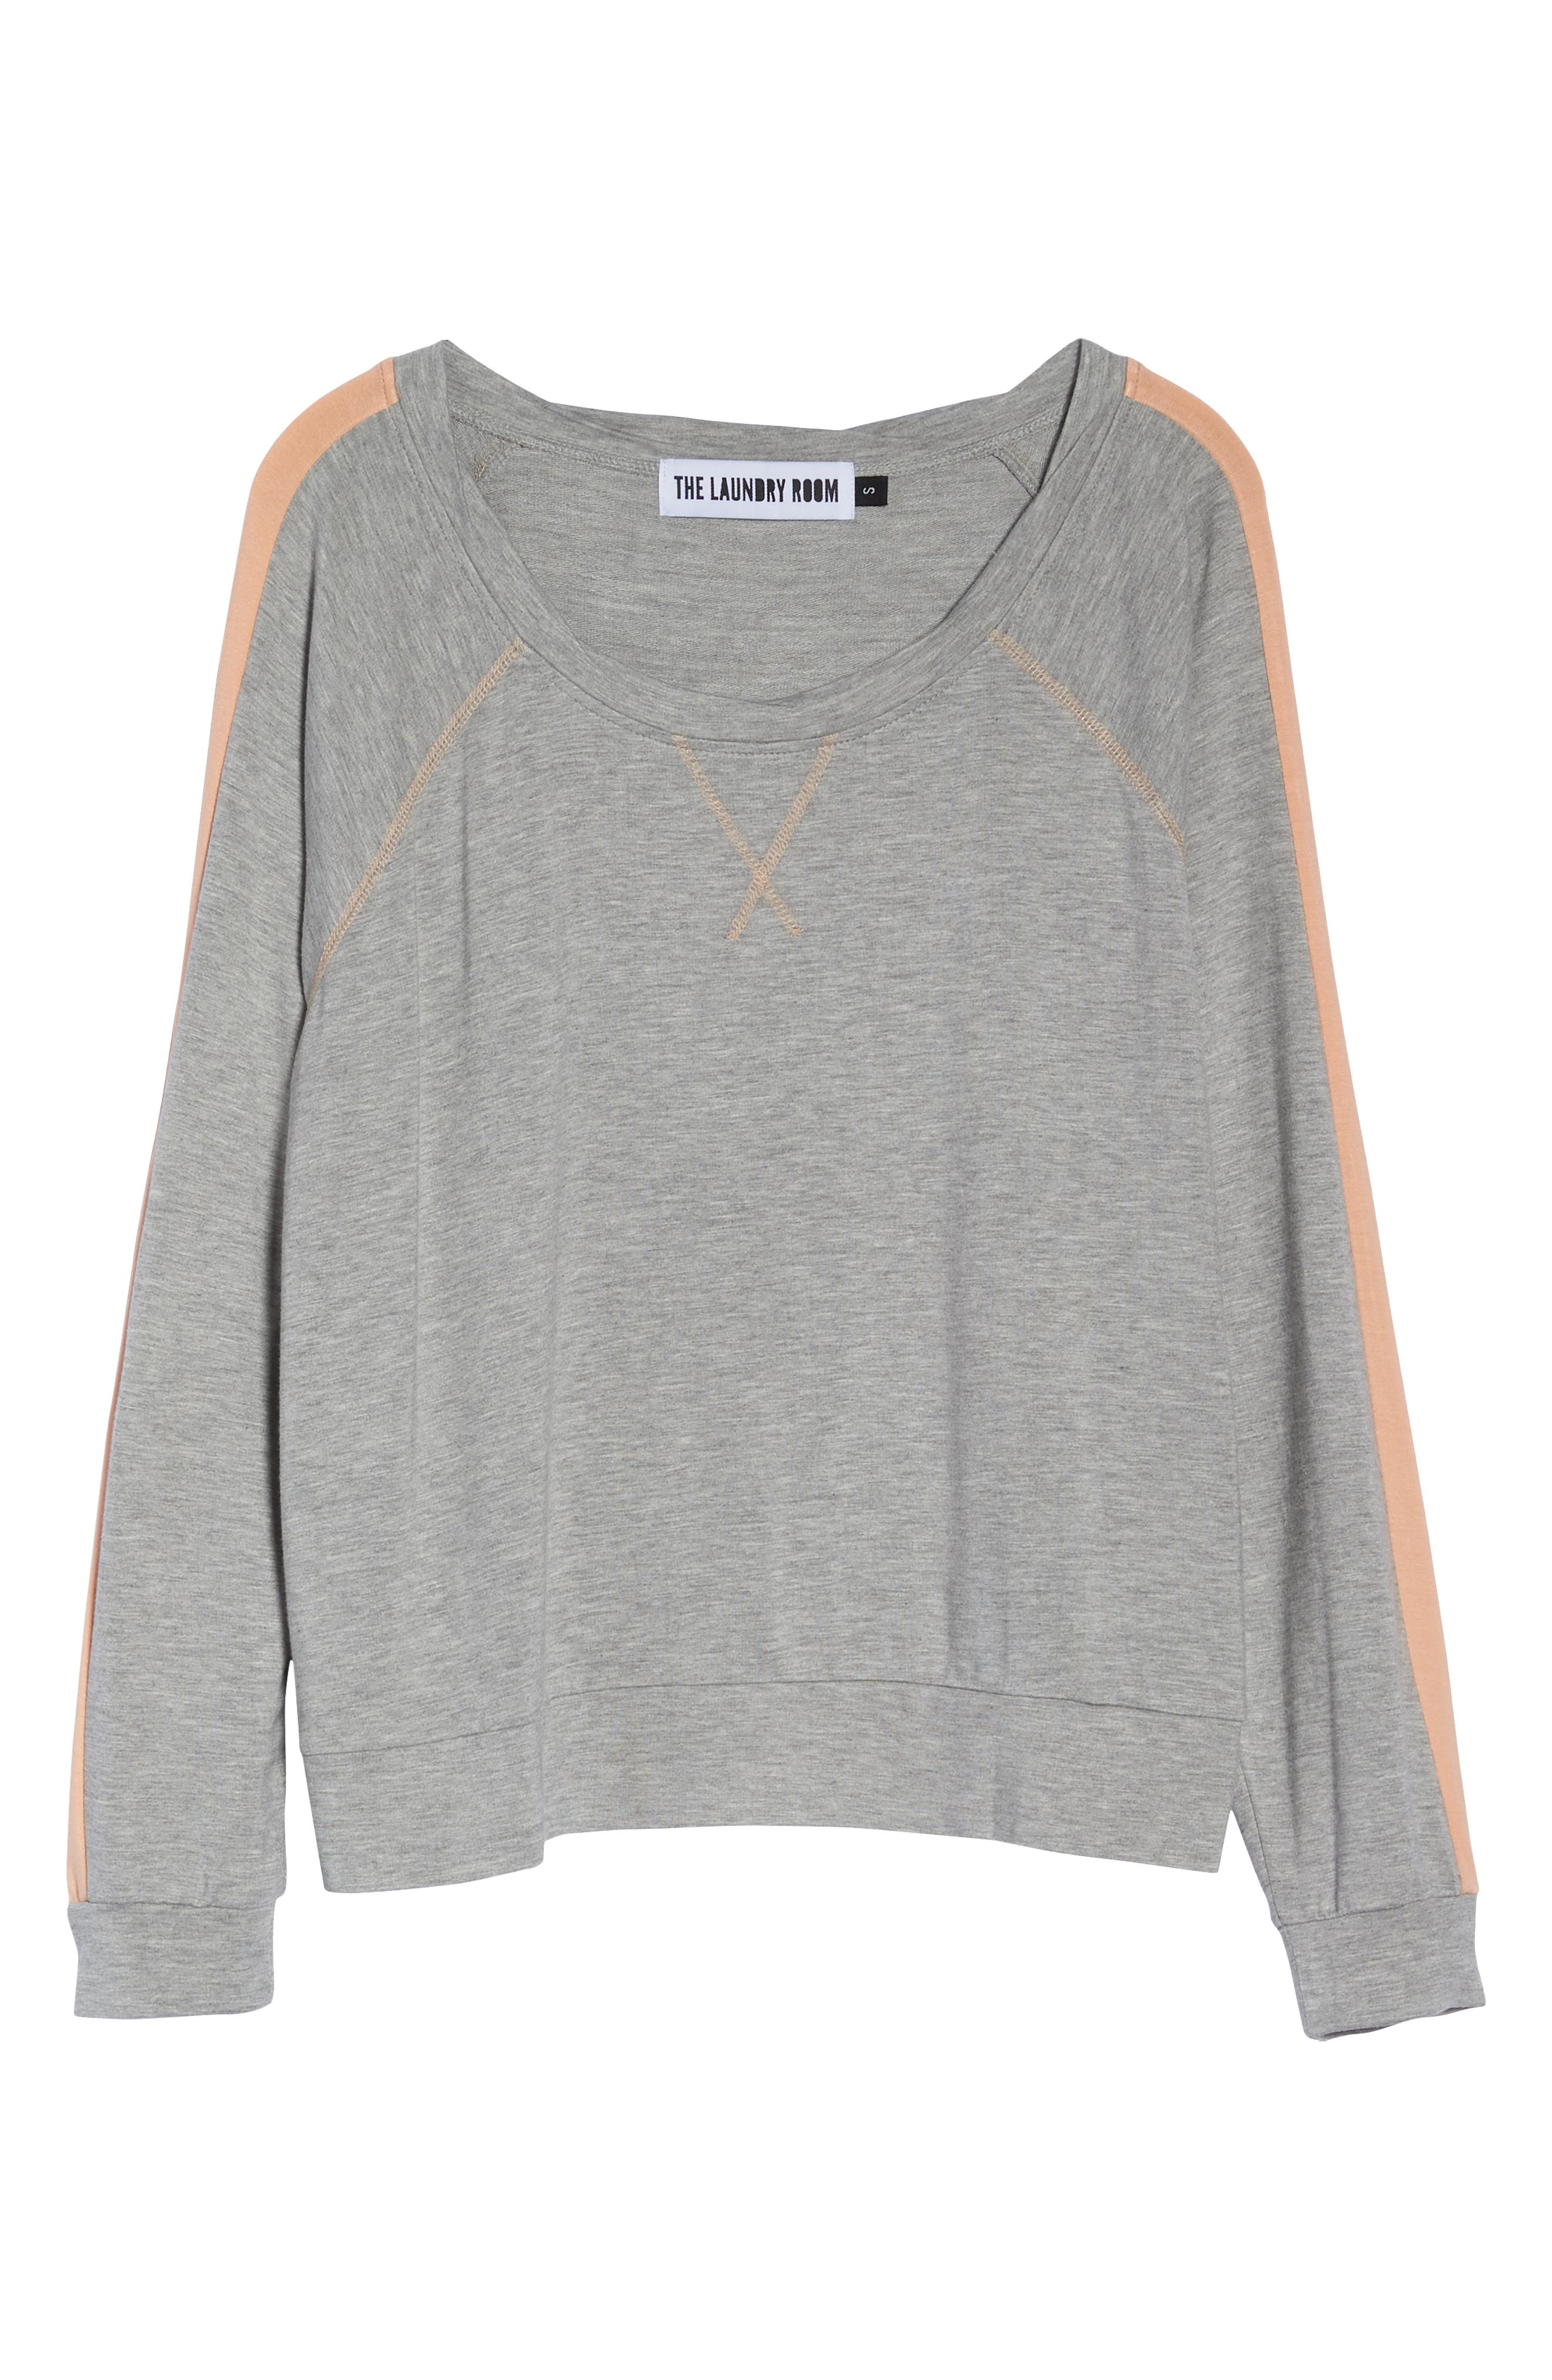 Elevens Sweatshirt,                             Alternate thumbnail 6, color,                             HEATHER / PEACH